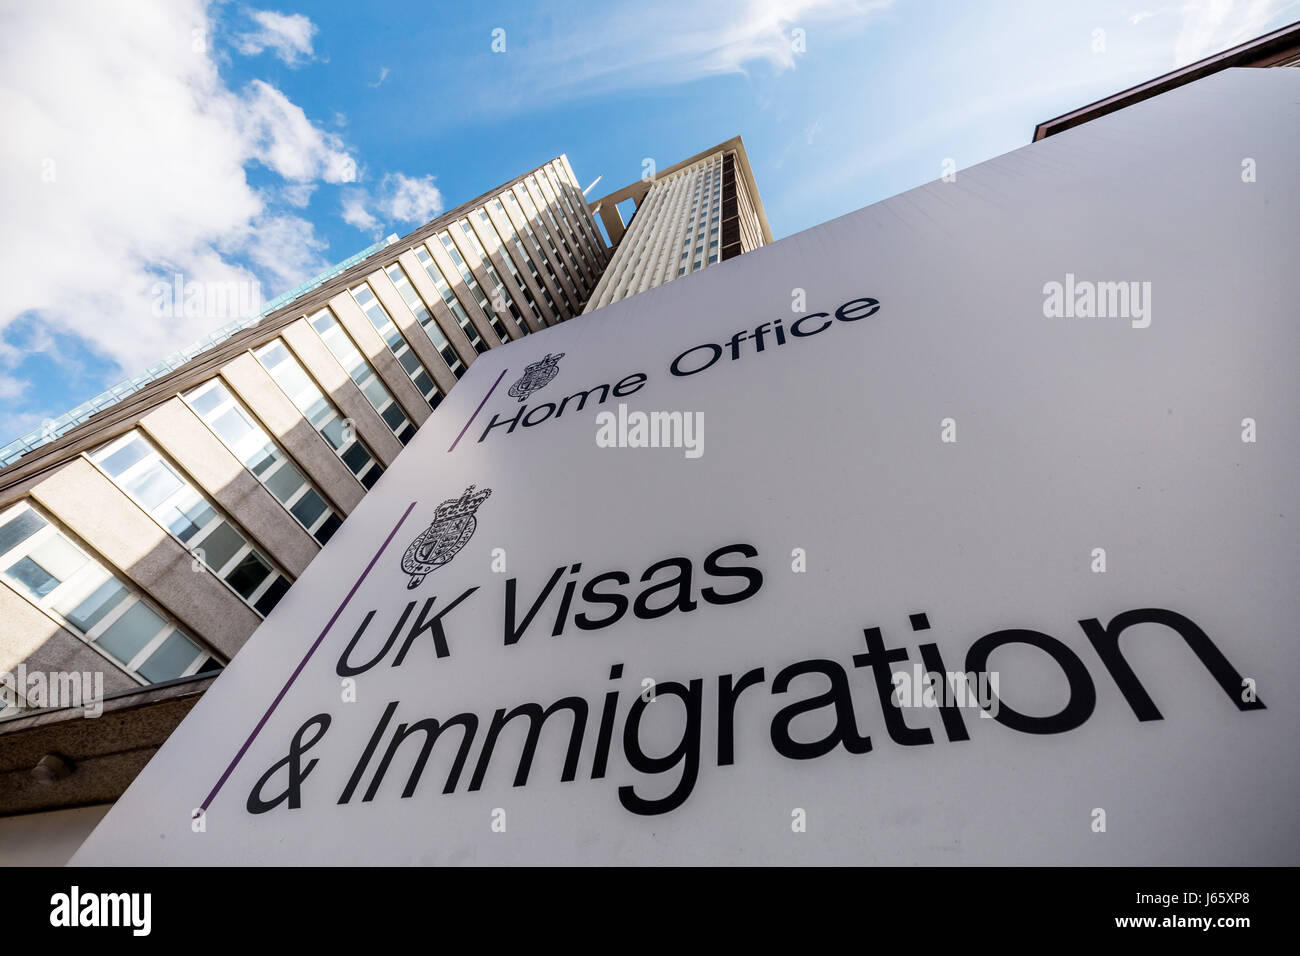 The home office uk visas immigration office at lunar house in stock photo 141501648 alamy - London immigration office ...